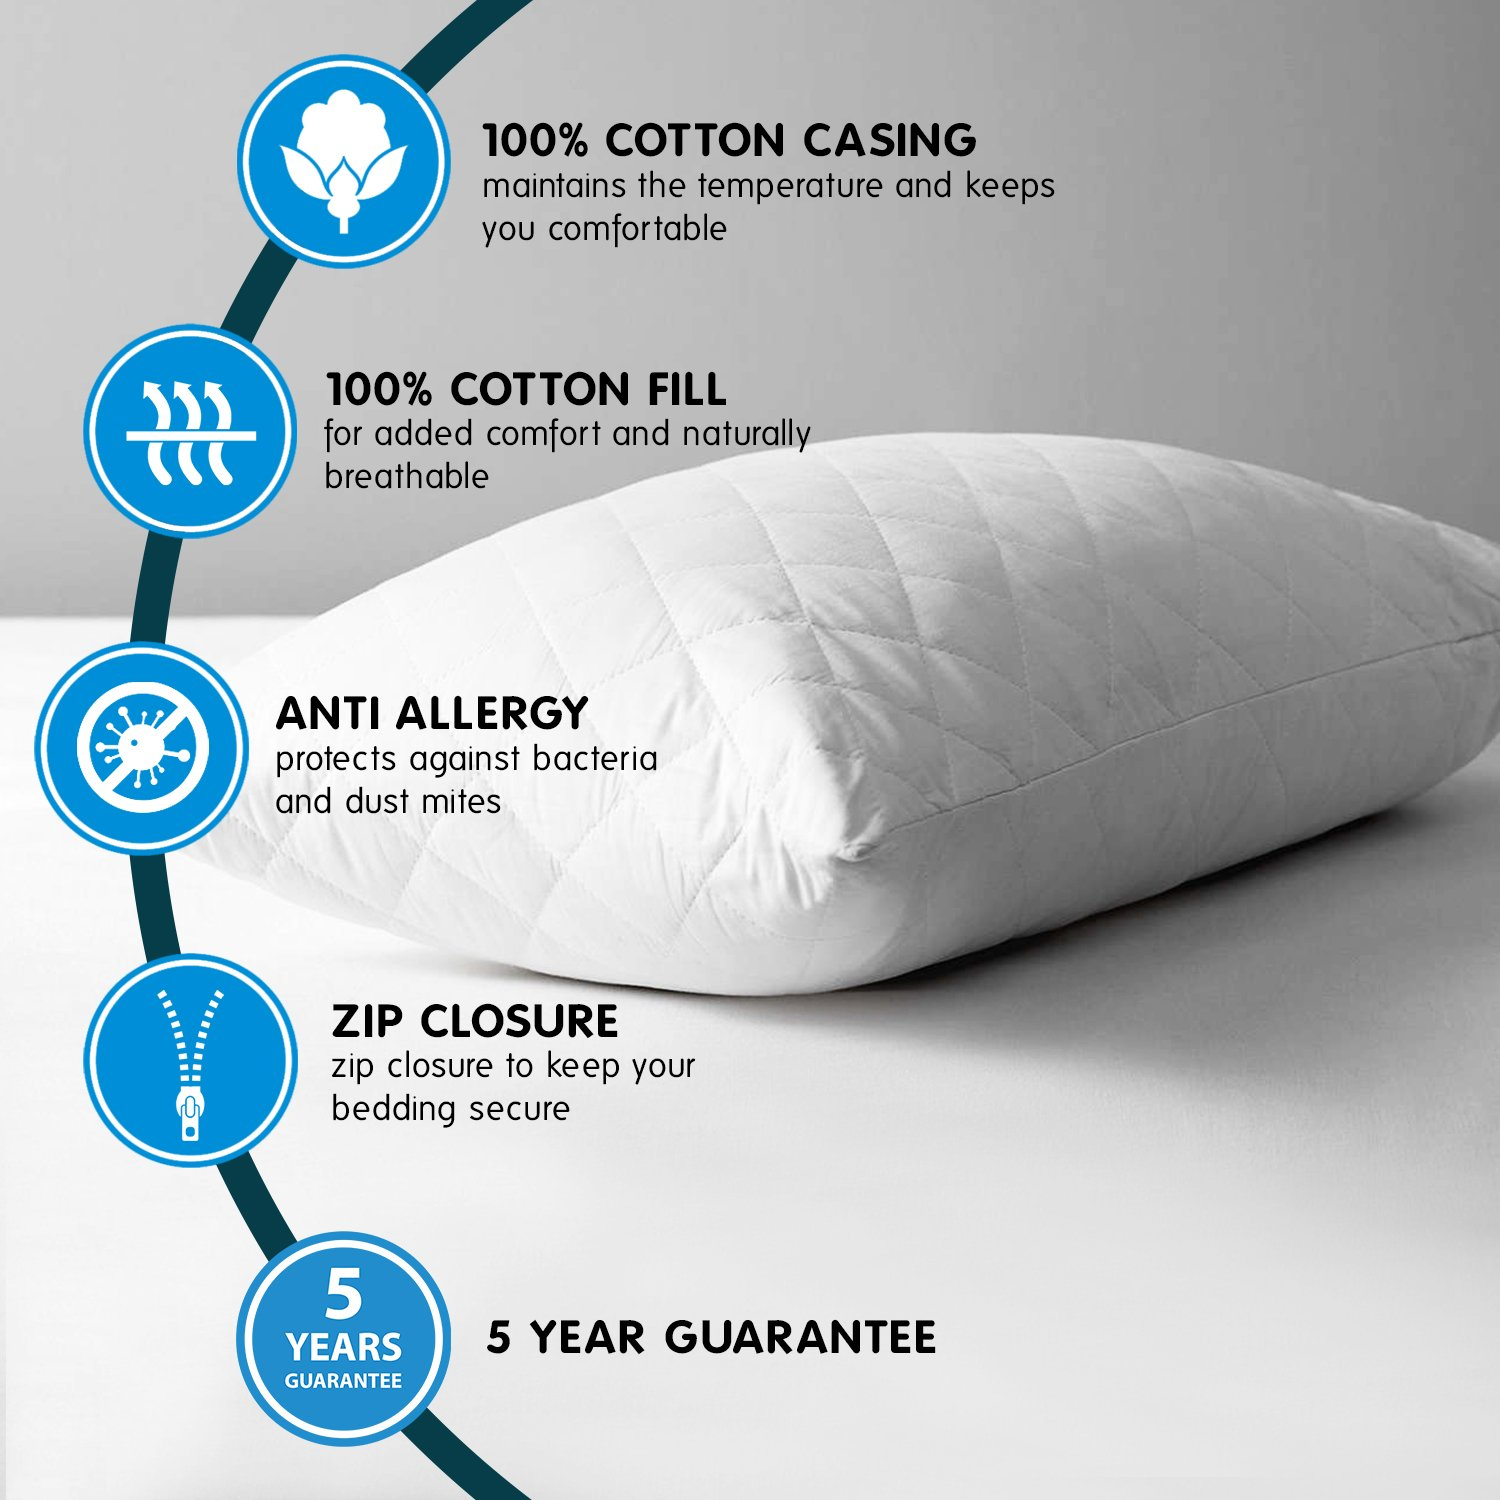 100% Pure Cotton Pillow Protectors with Zip (2 Pack), Machine Washable, Anti-Allergy Cuddledown